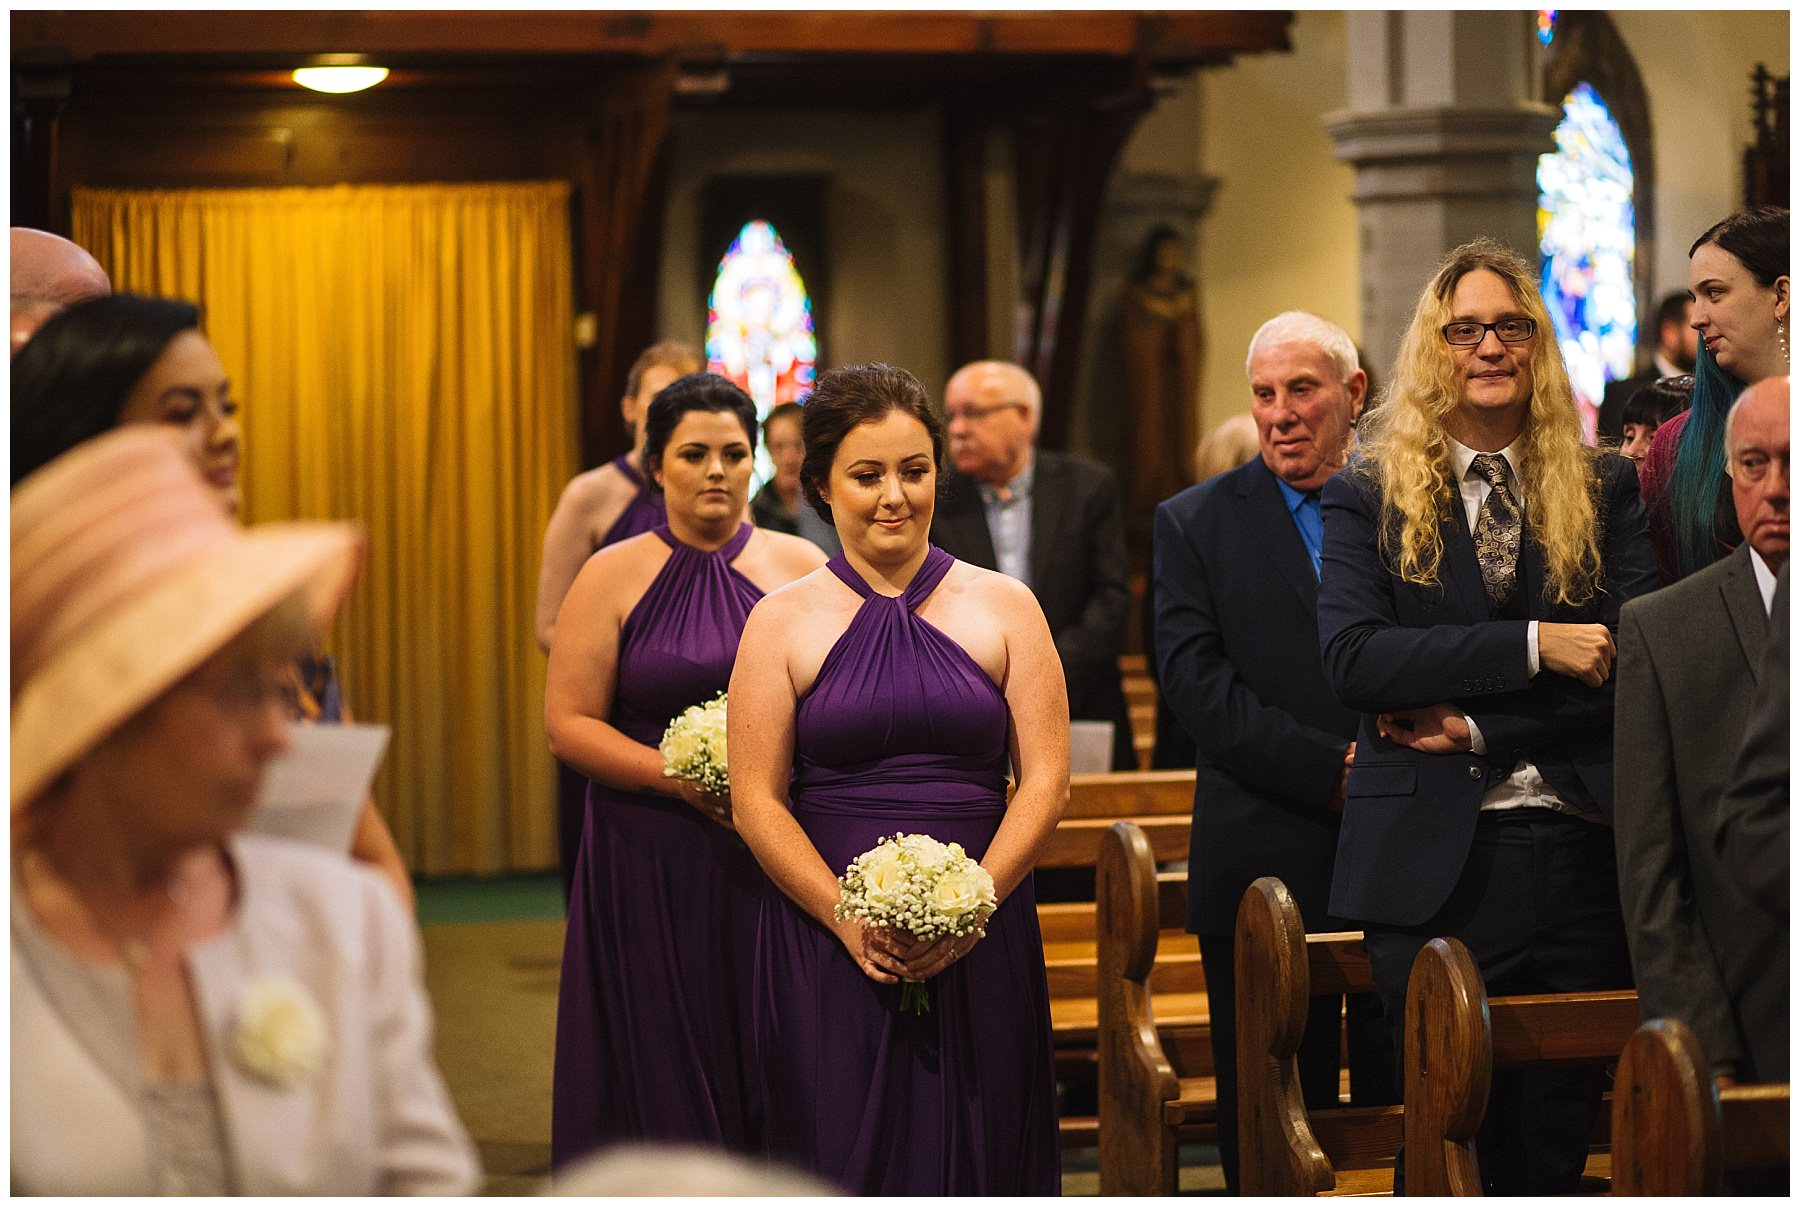 bridesmaids arrive into church for wedding ceremony